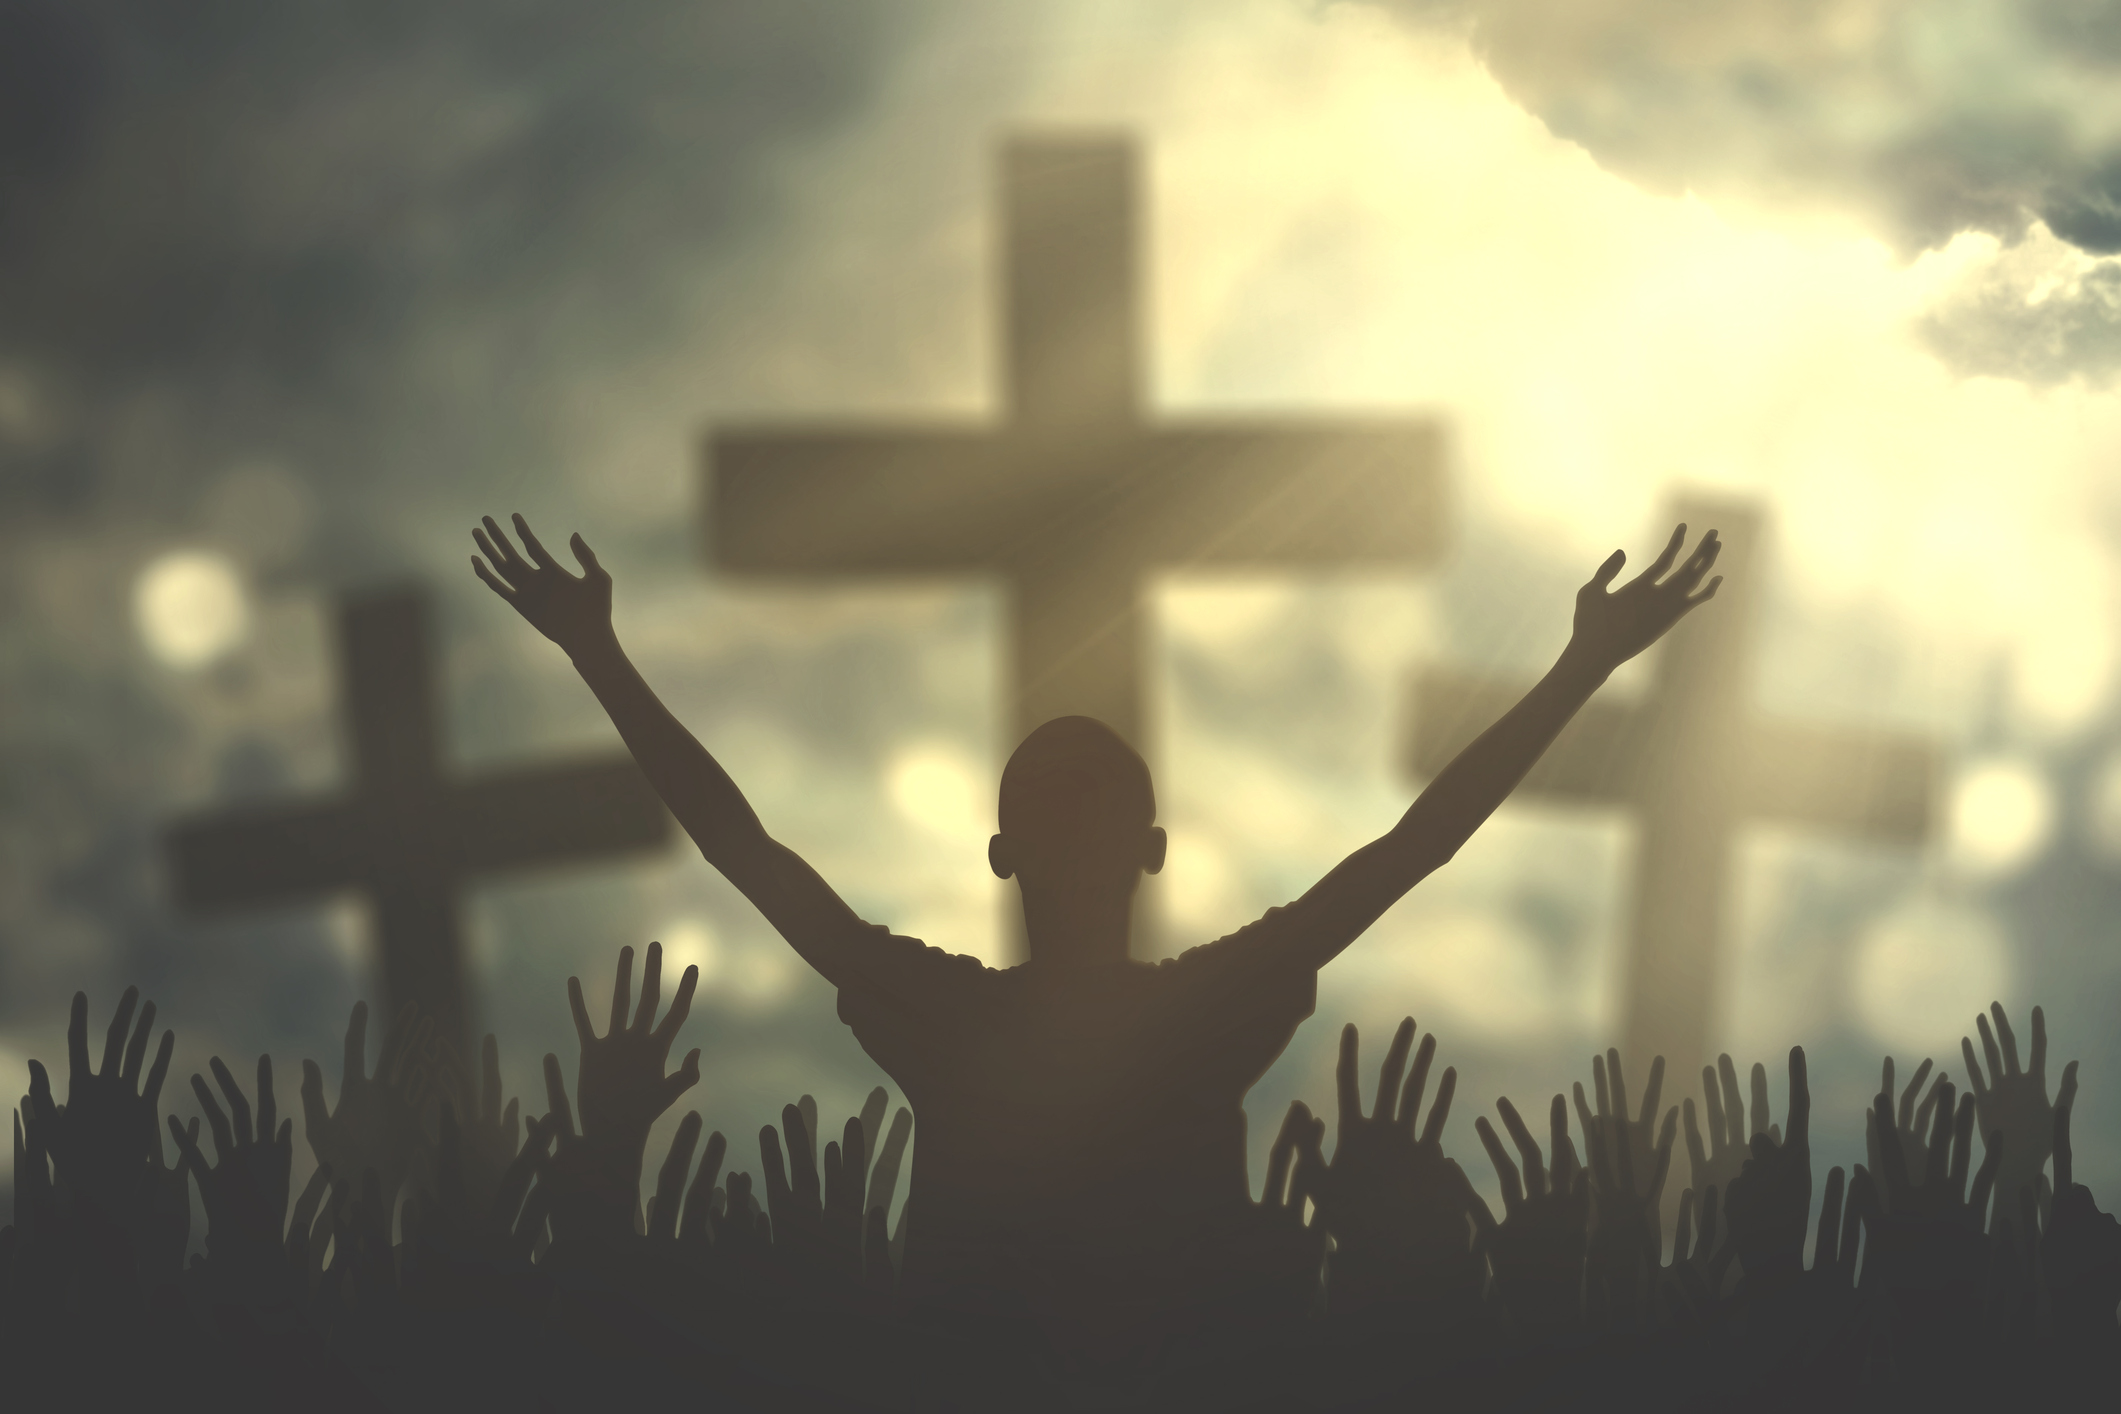 8-day Easter Devotional: Start with Praise (Day 2)